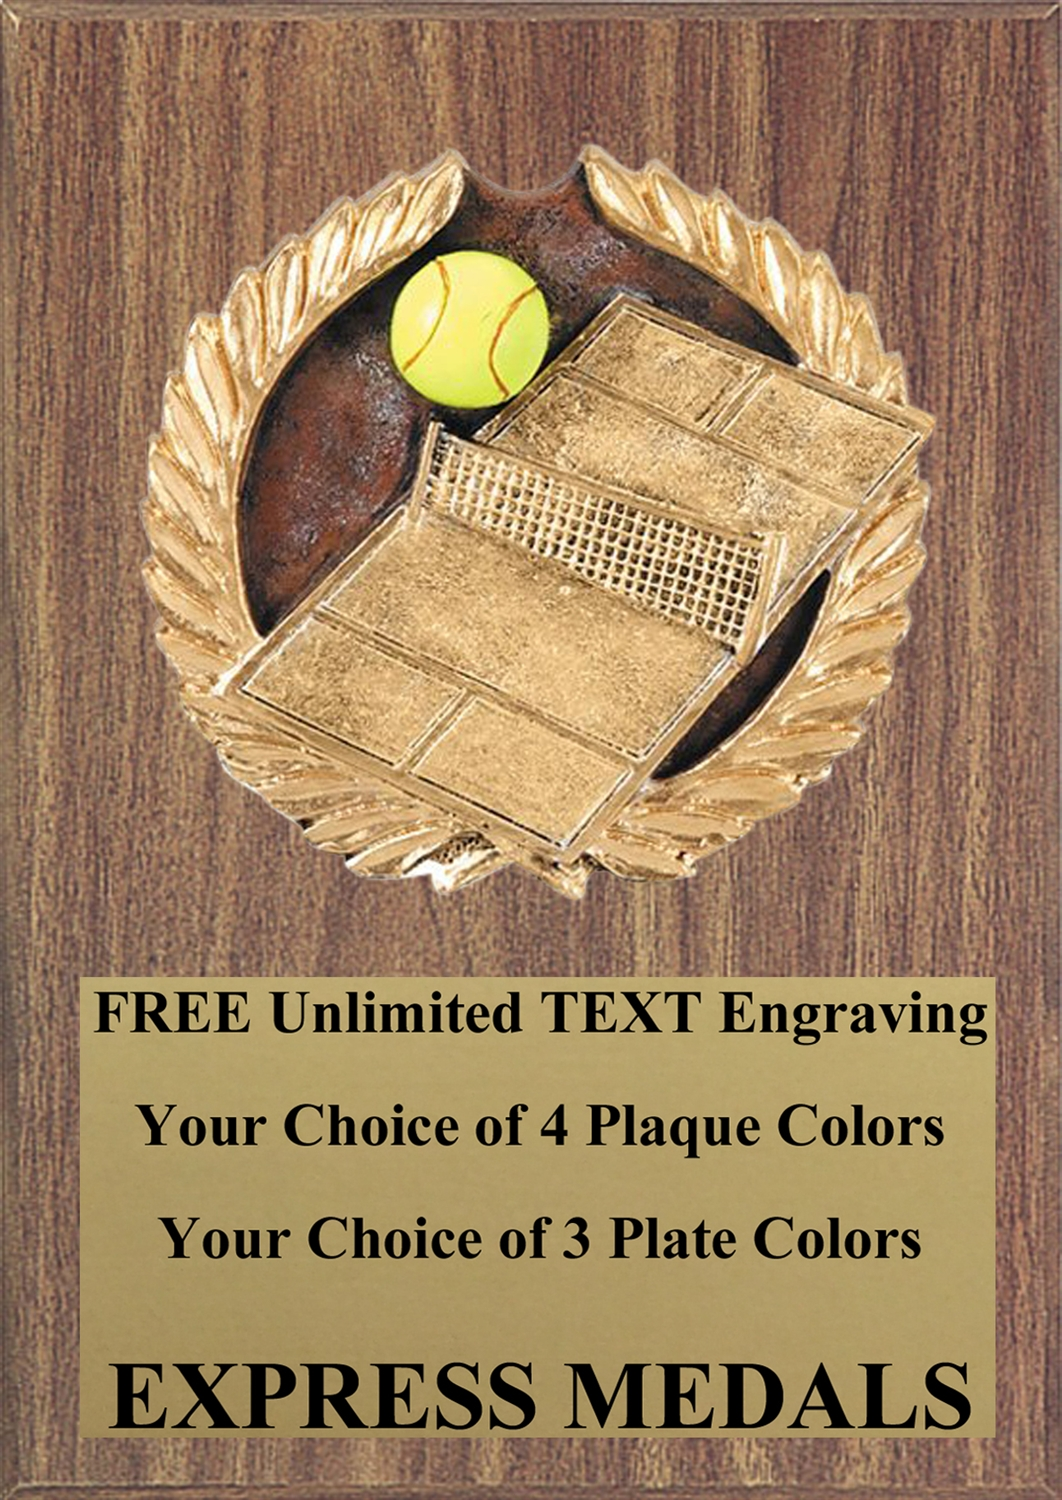 Full Color Tennis Plaque 4x6 & 5x7 PM662-VL